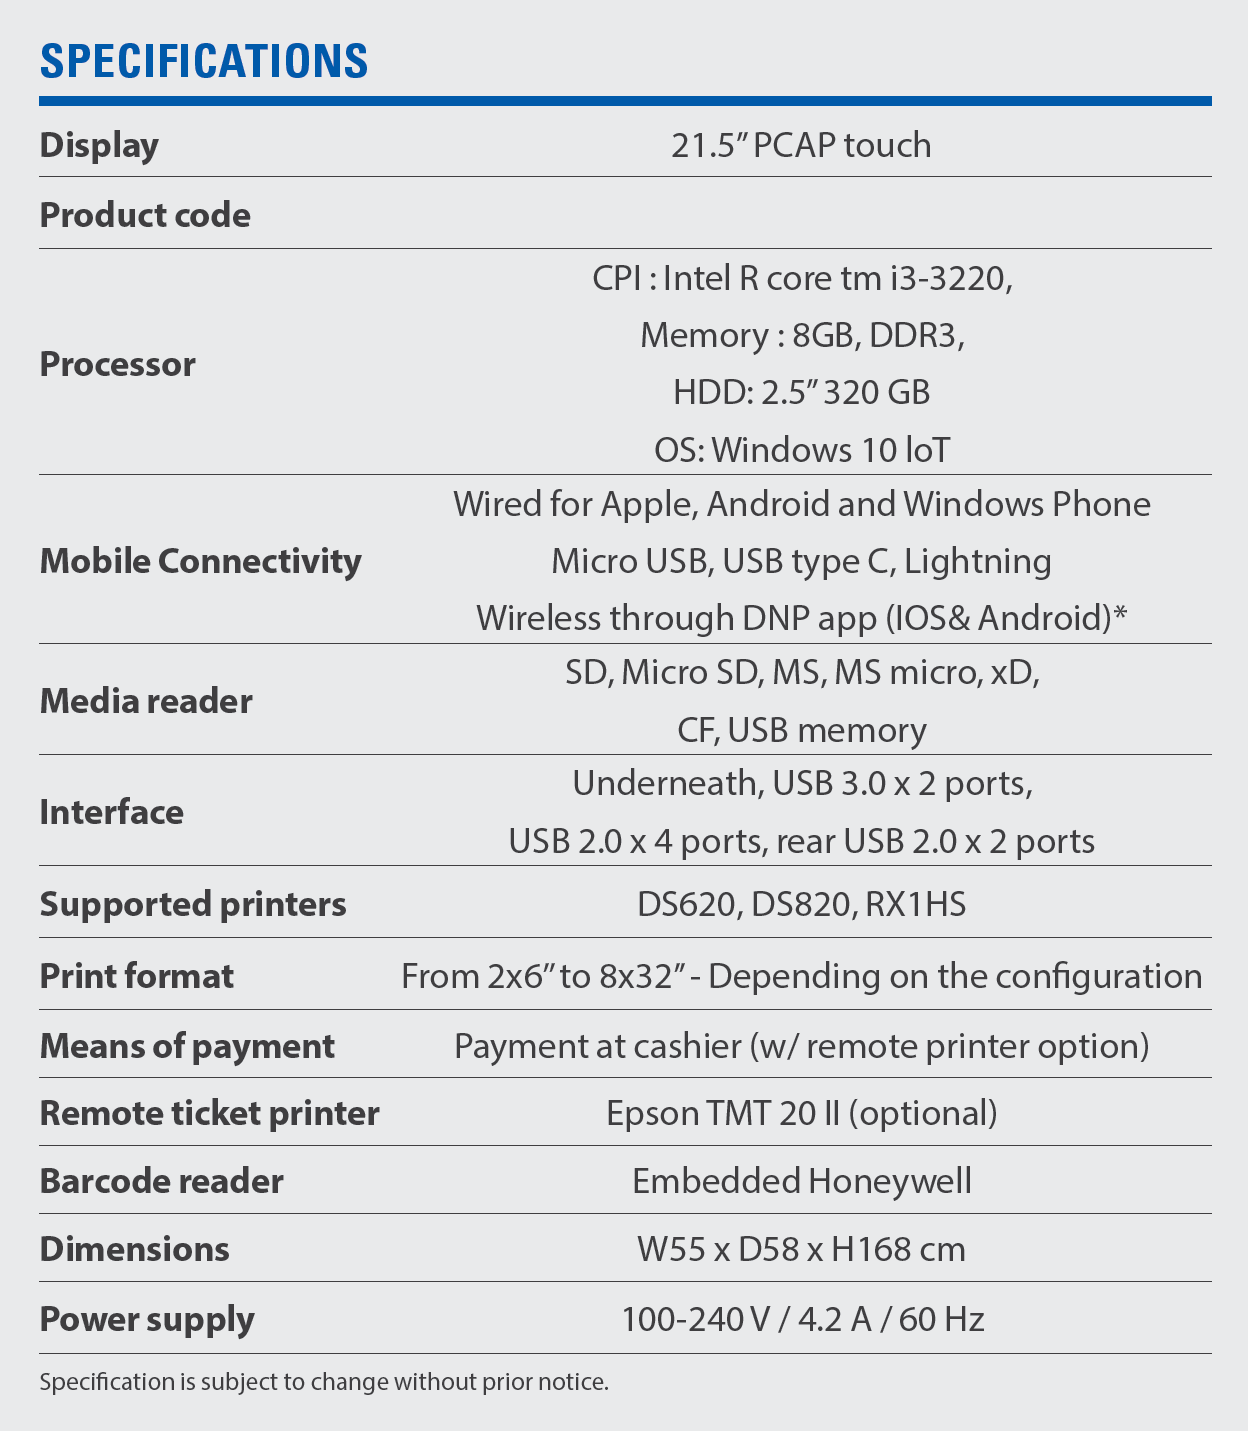 dsk 30 specifications